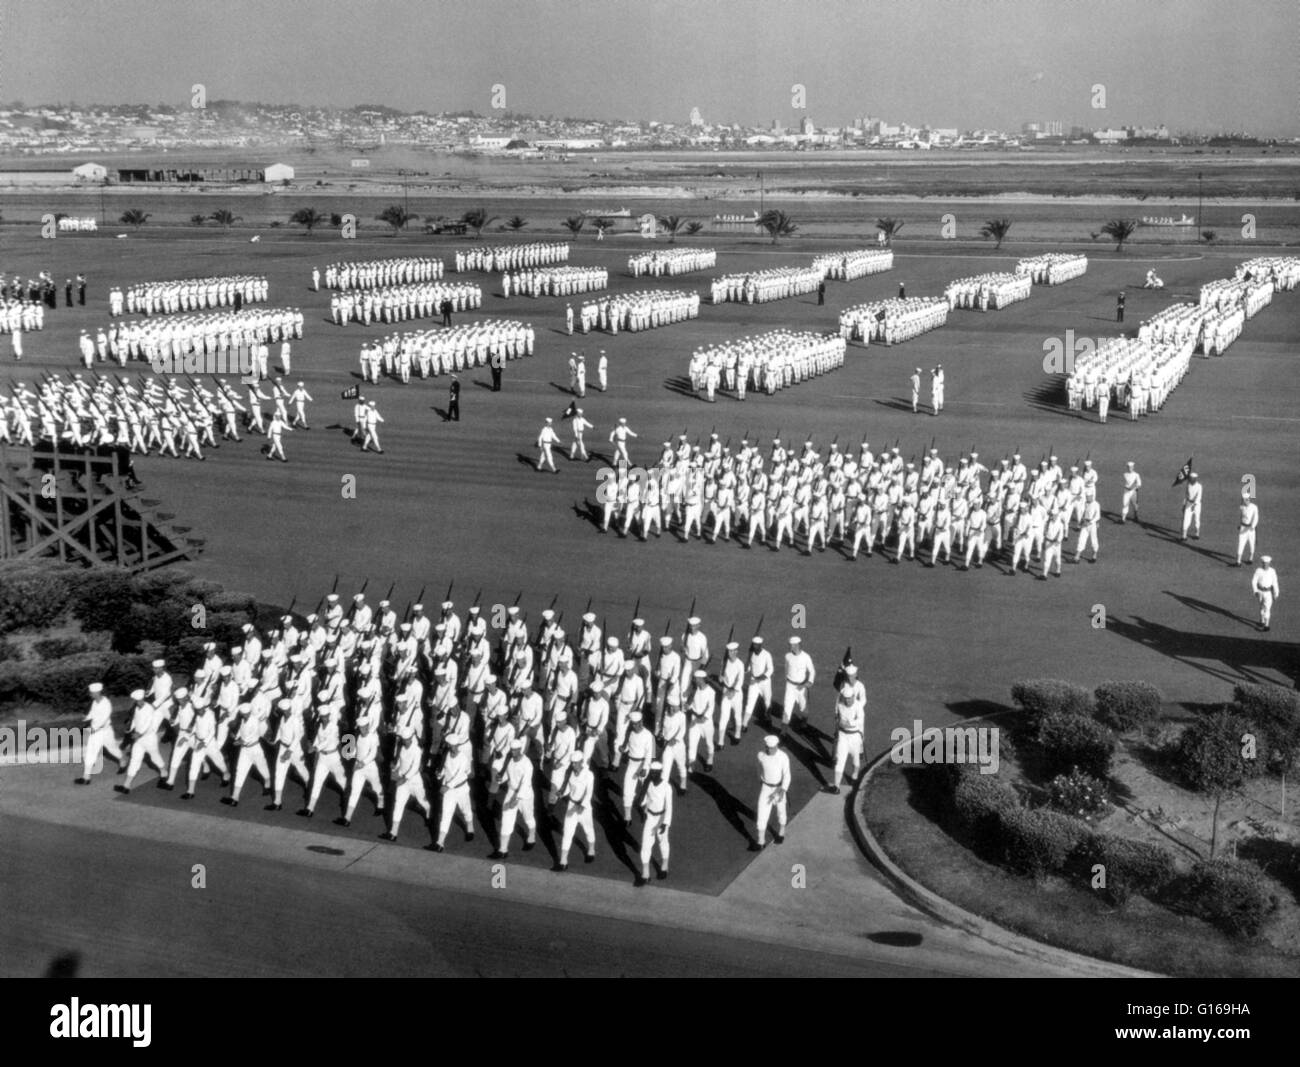 United States Naval Training Center, San Diego, California, late 1940's. A military parade is a formation of - Stock Image